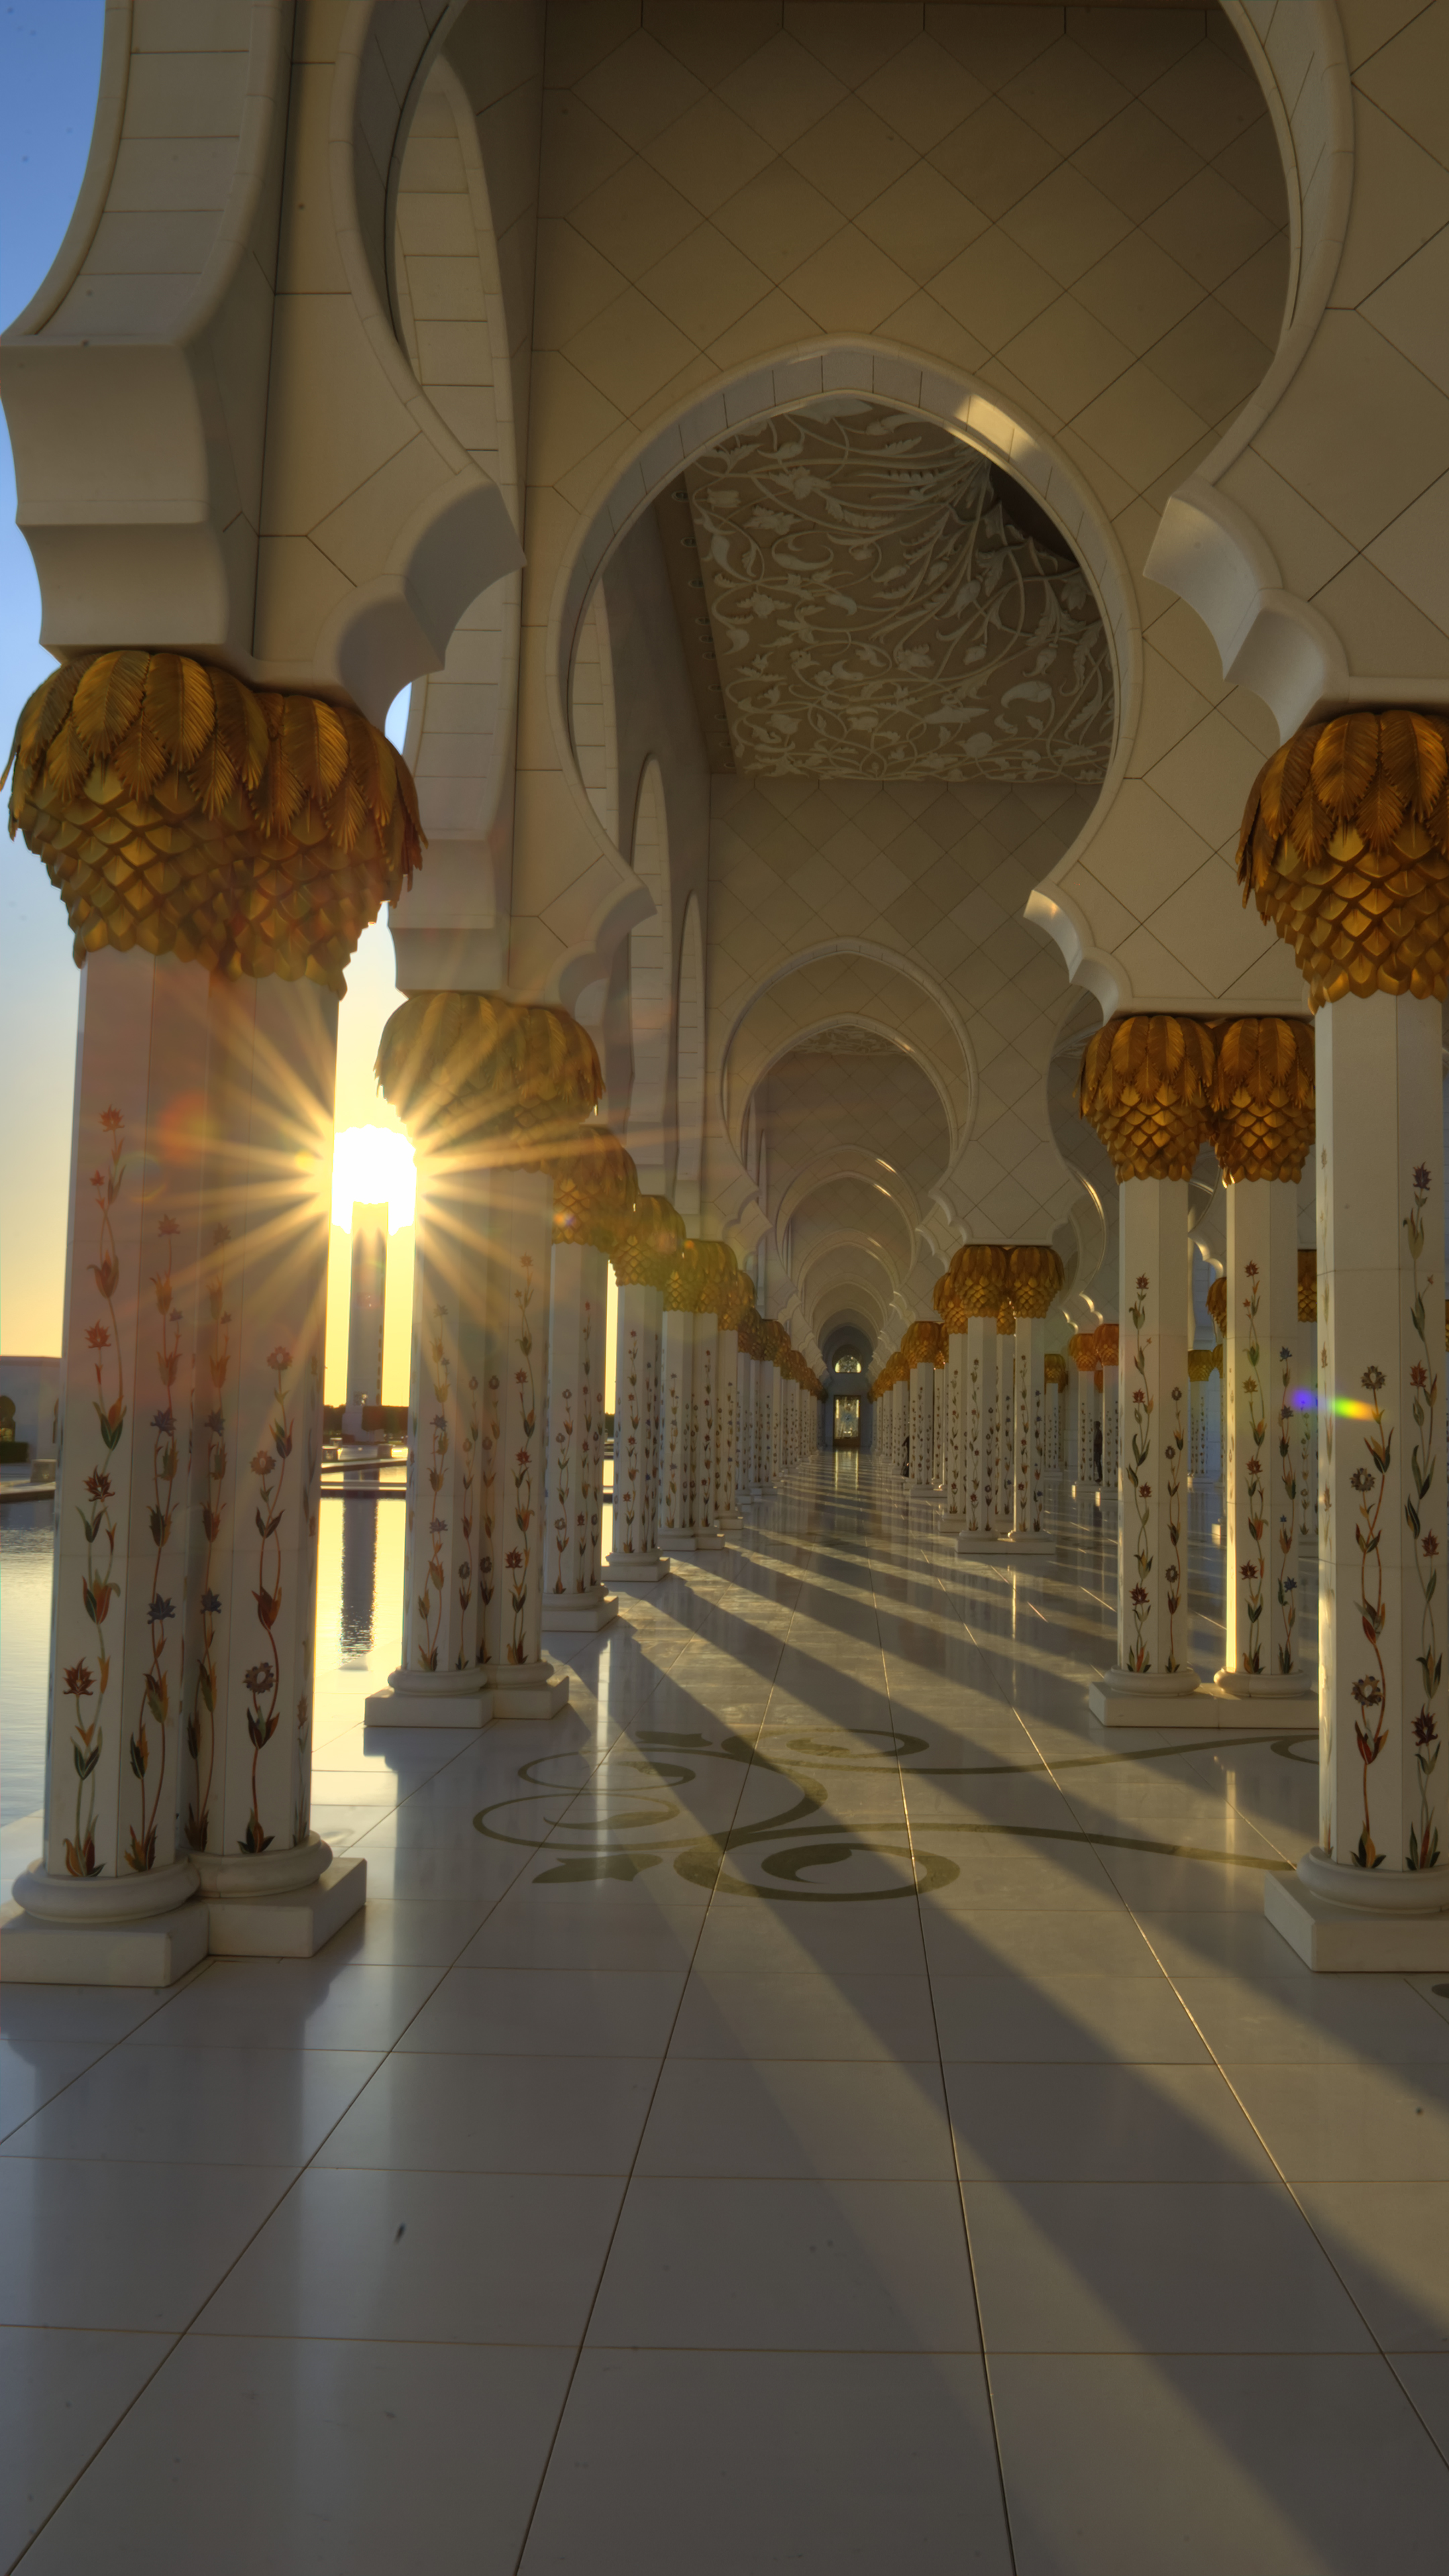 Sunset at the Grand Mosque